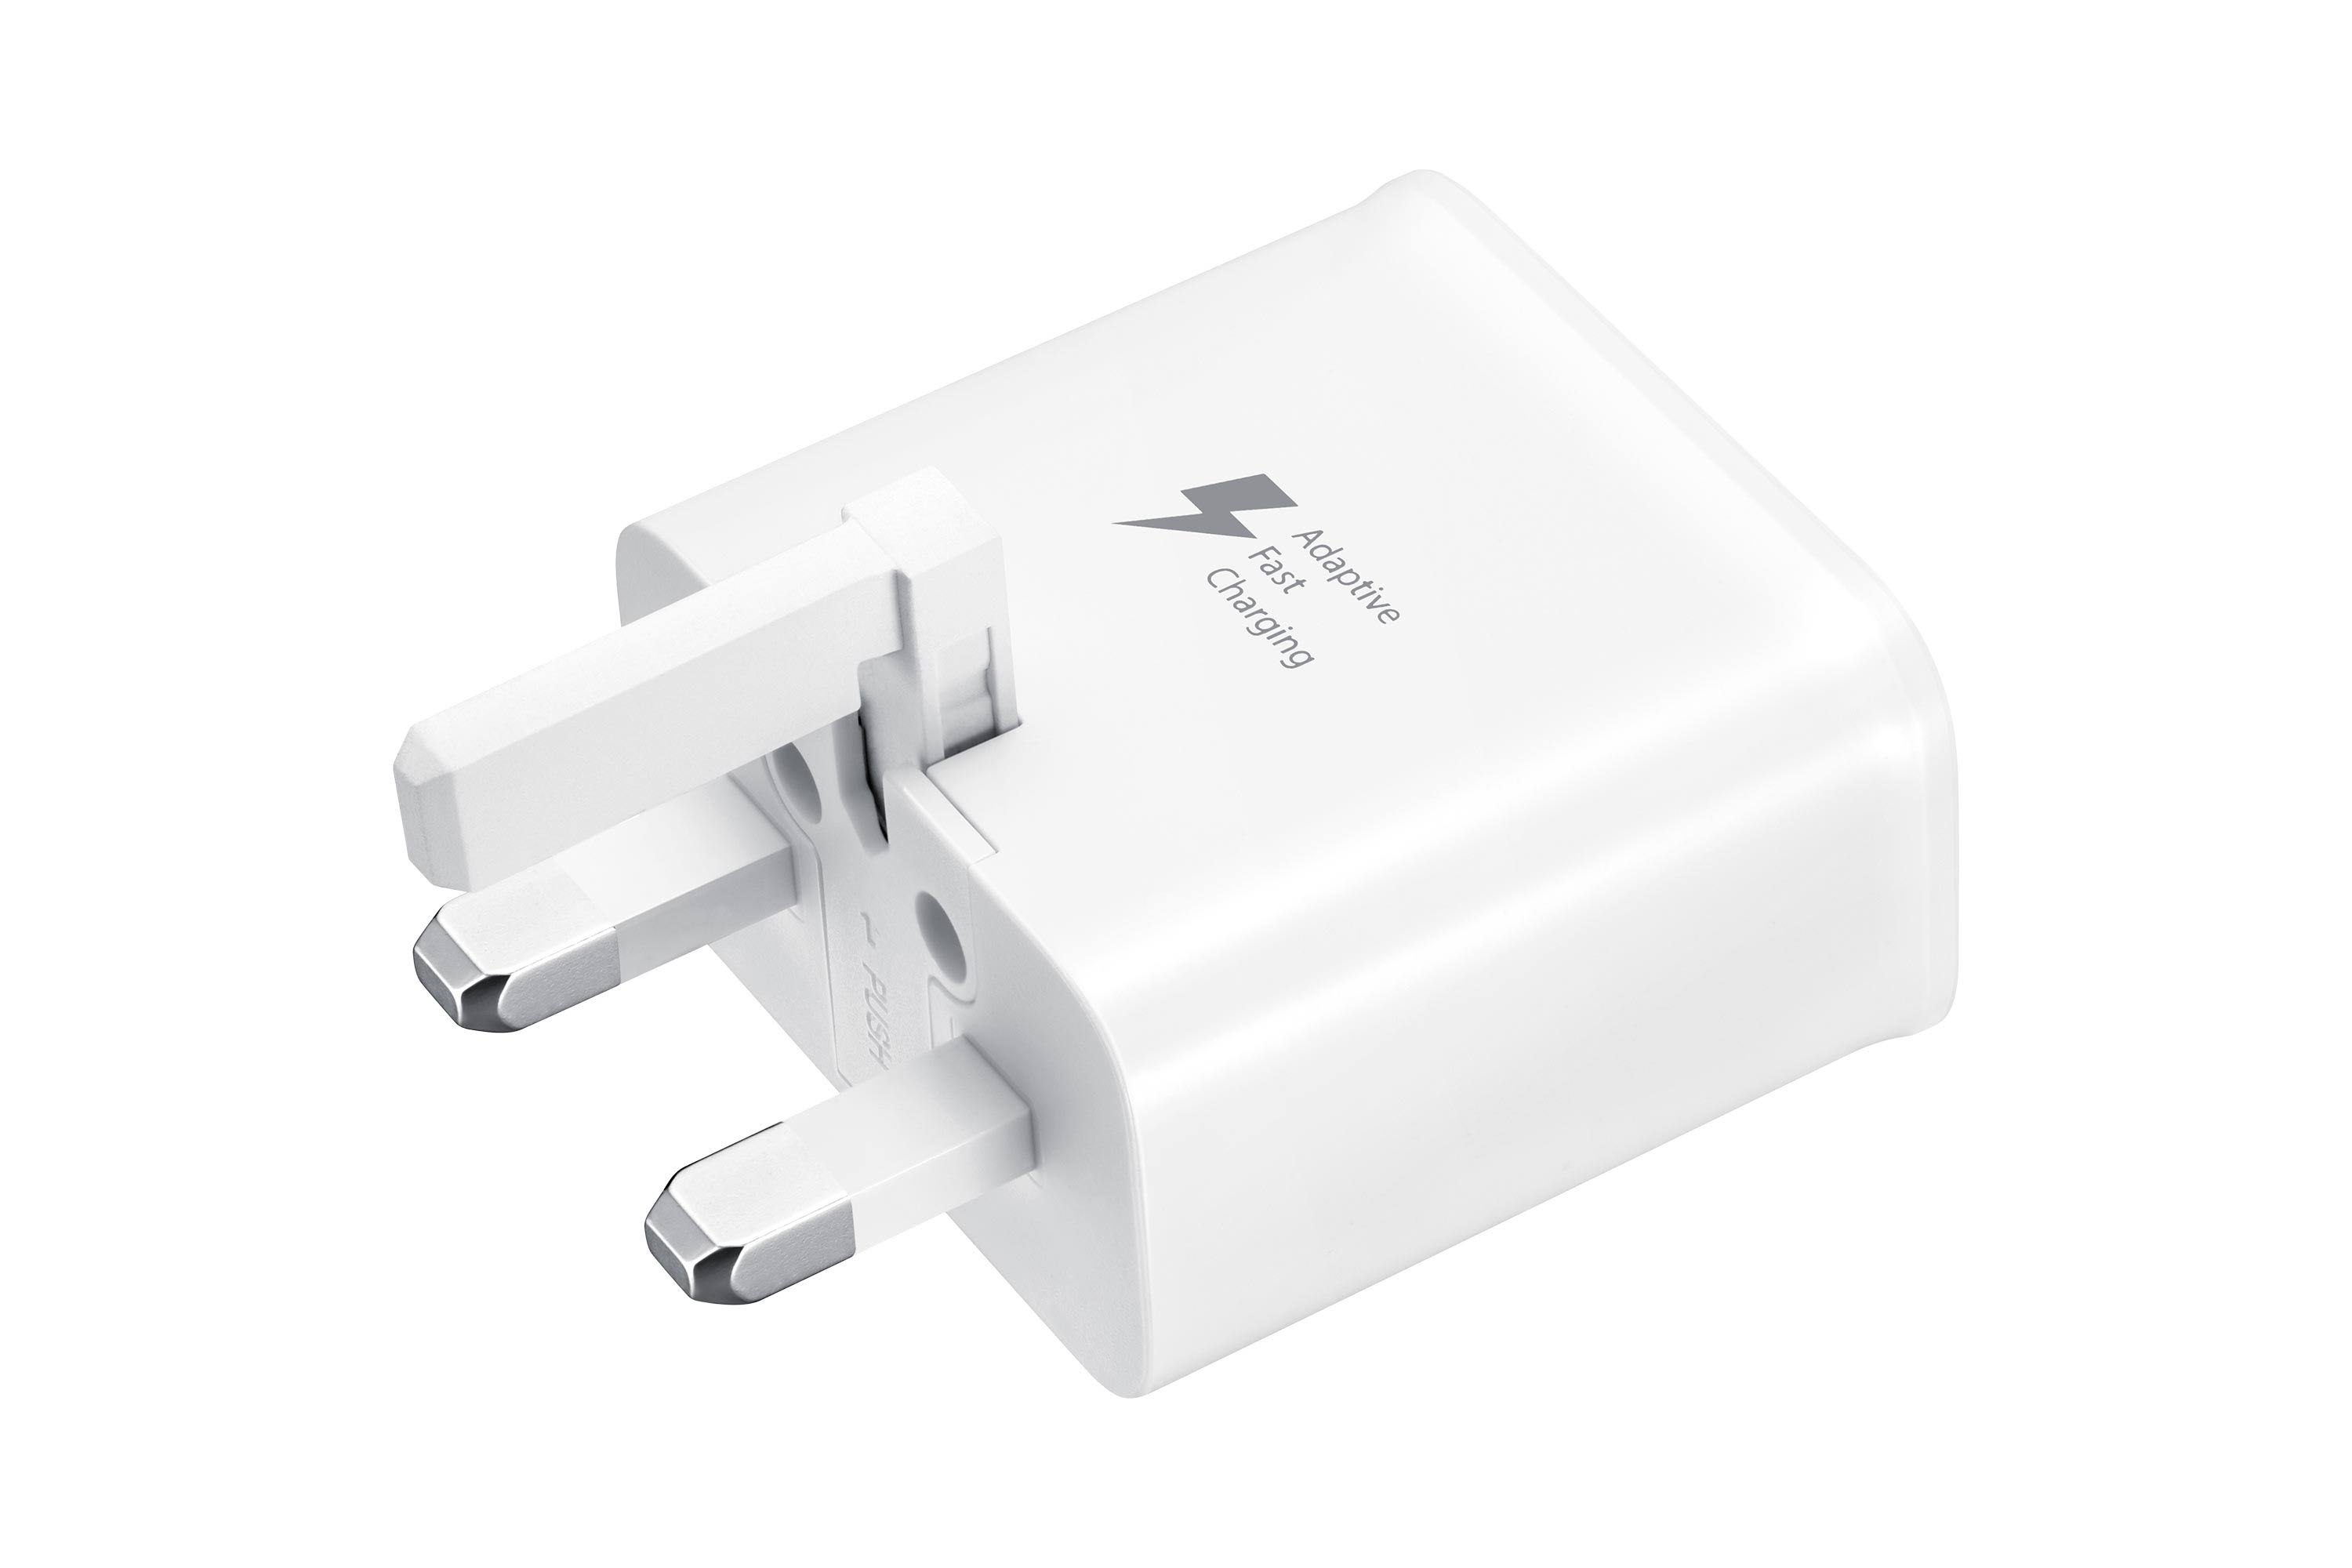 Samsung Original Fast Charging Travel Adapter - White, 9V